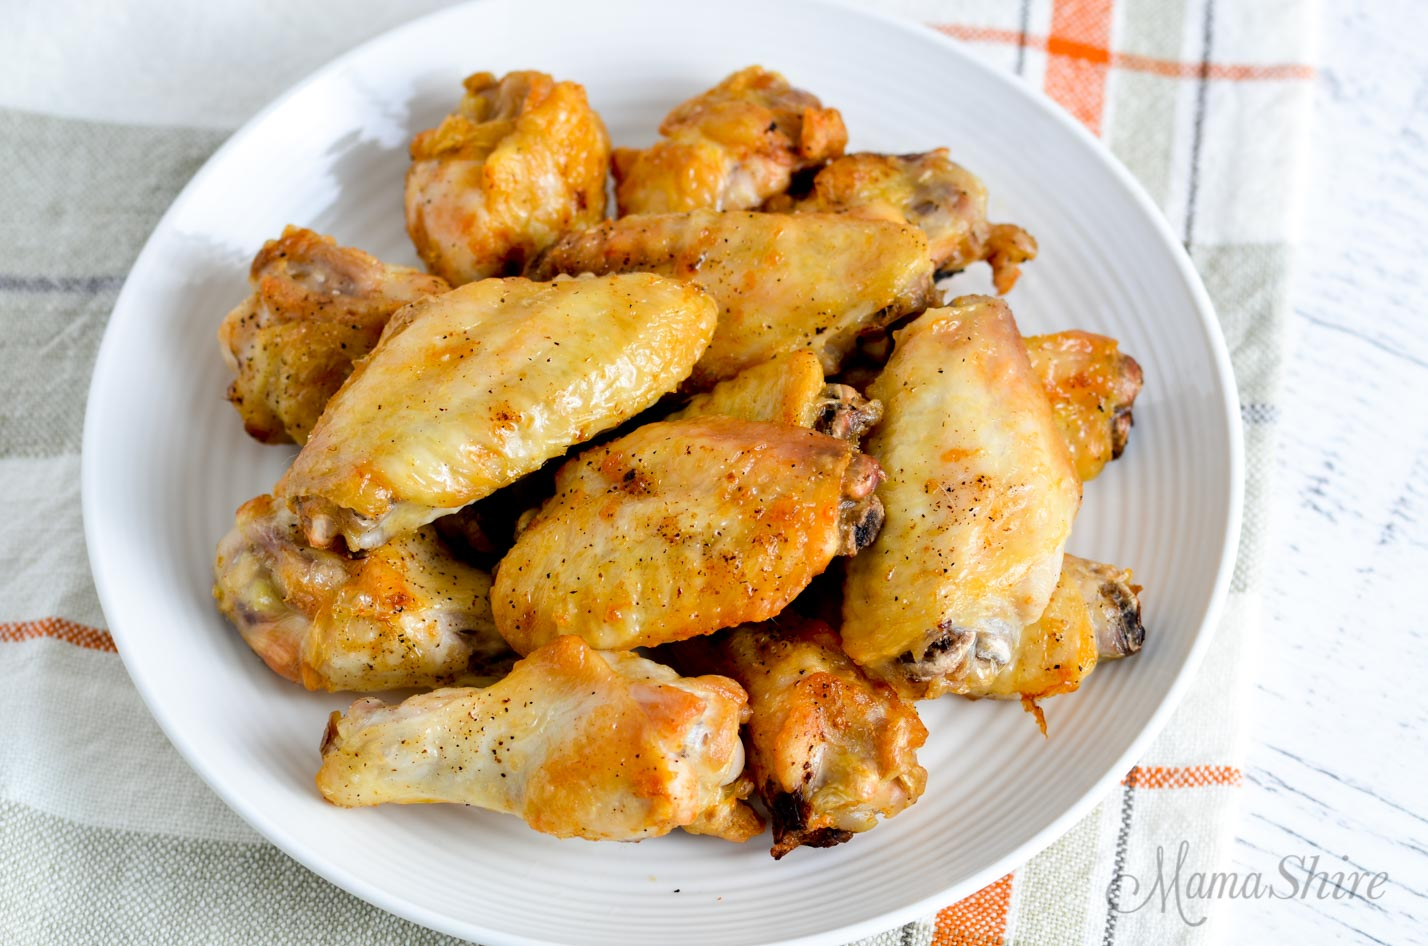 A plate of air fryer chicken wings.